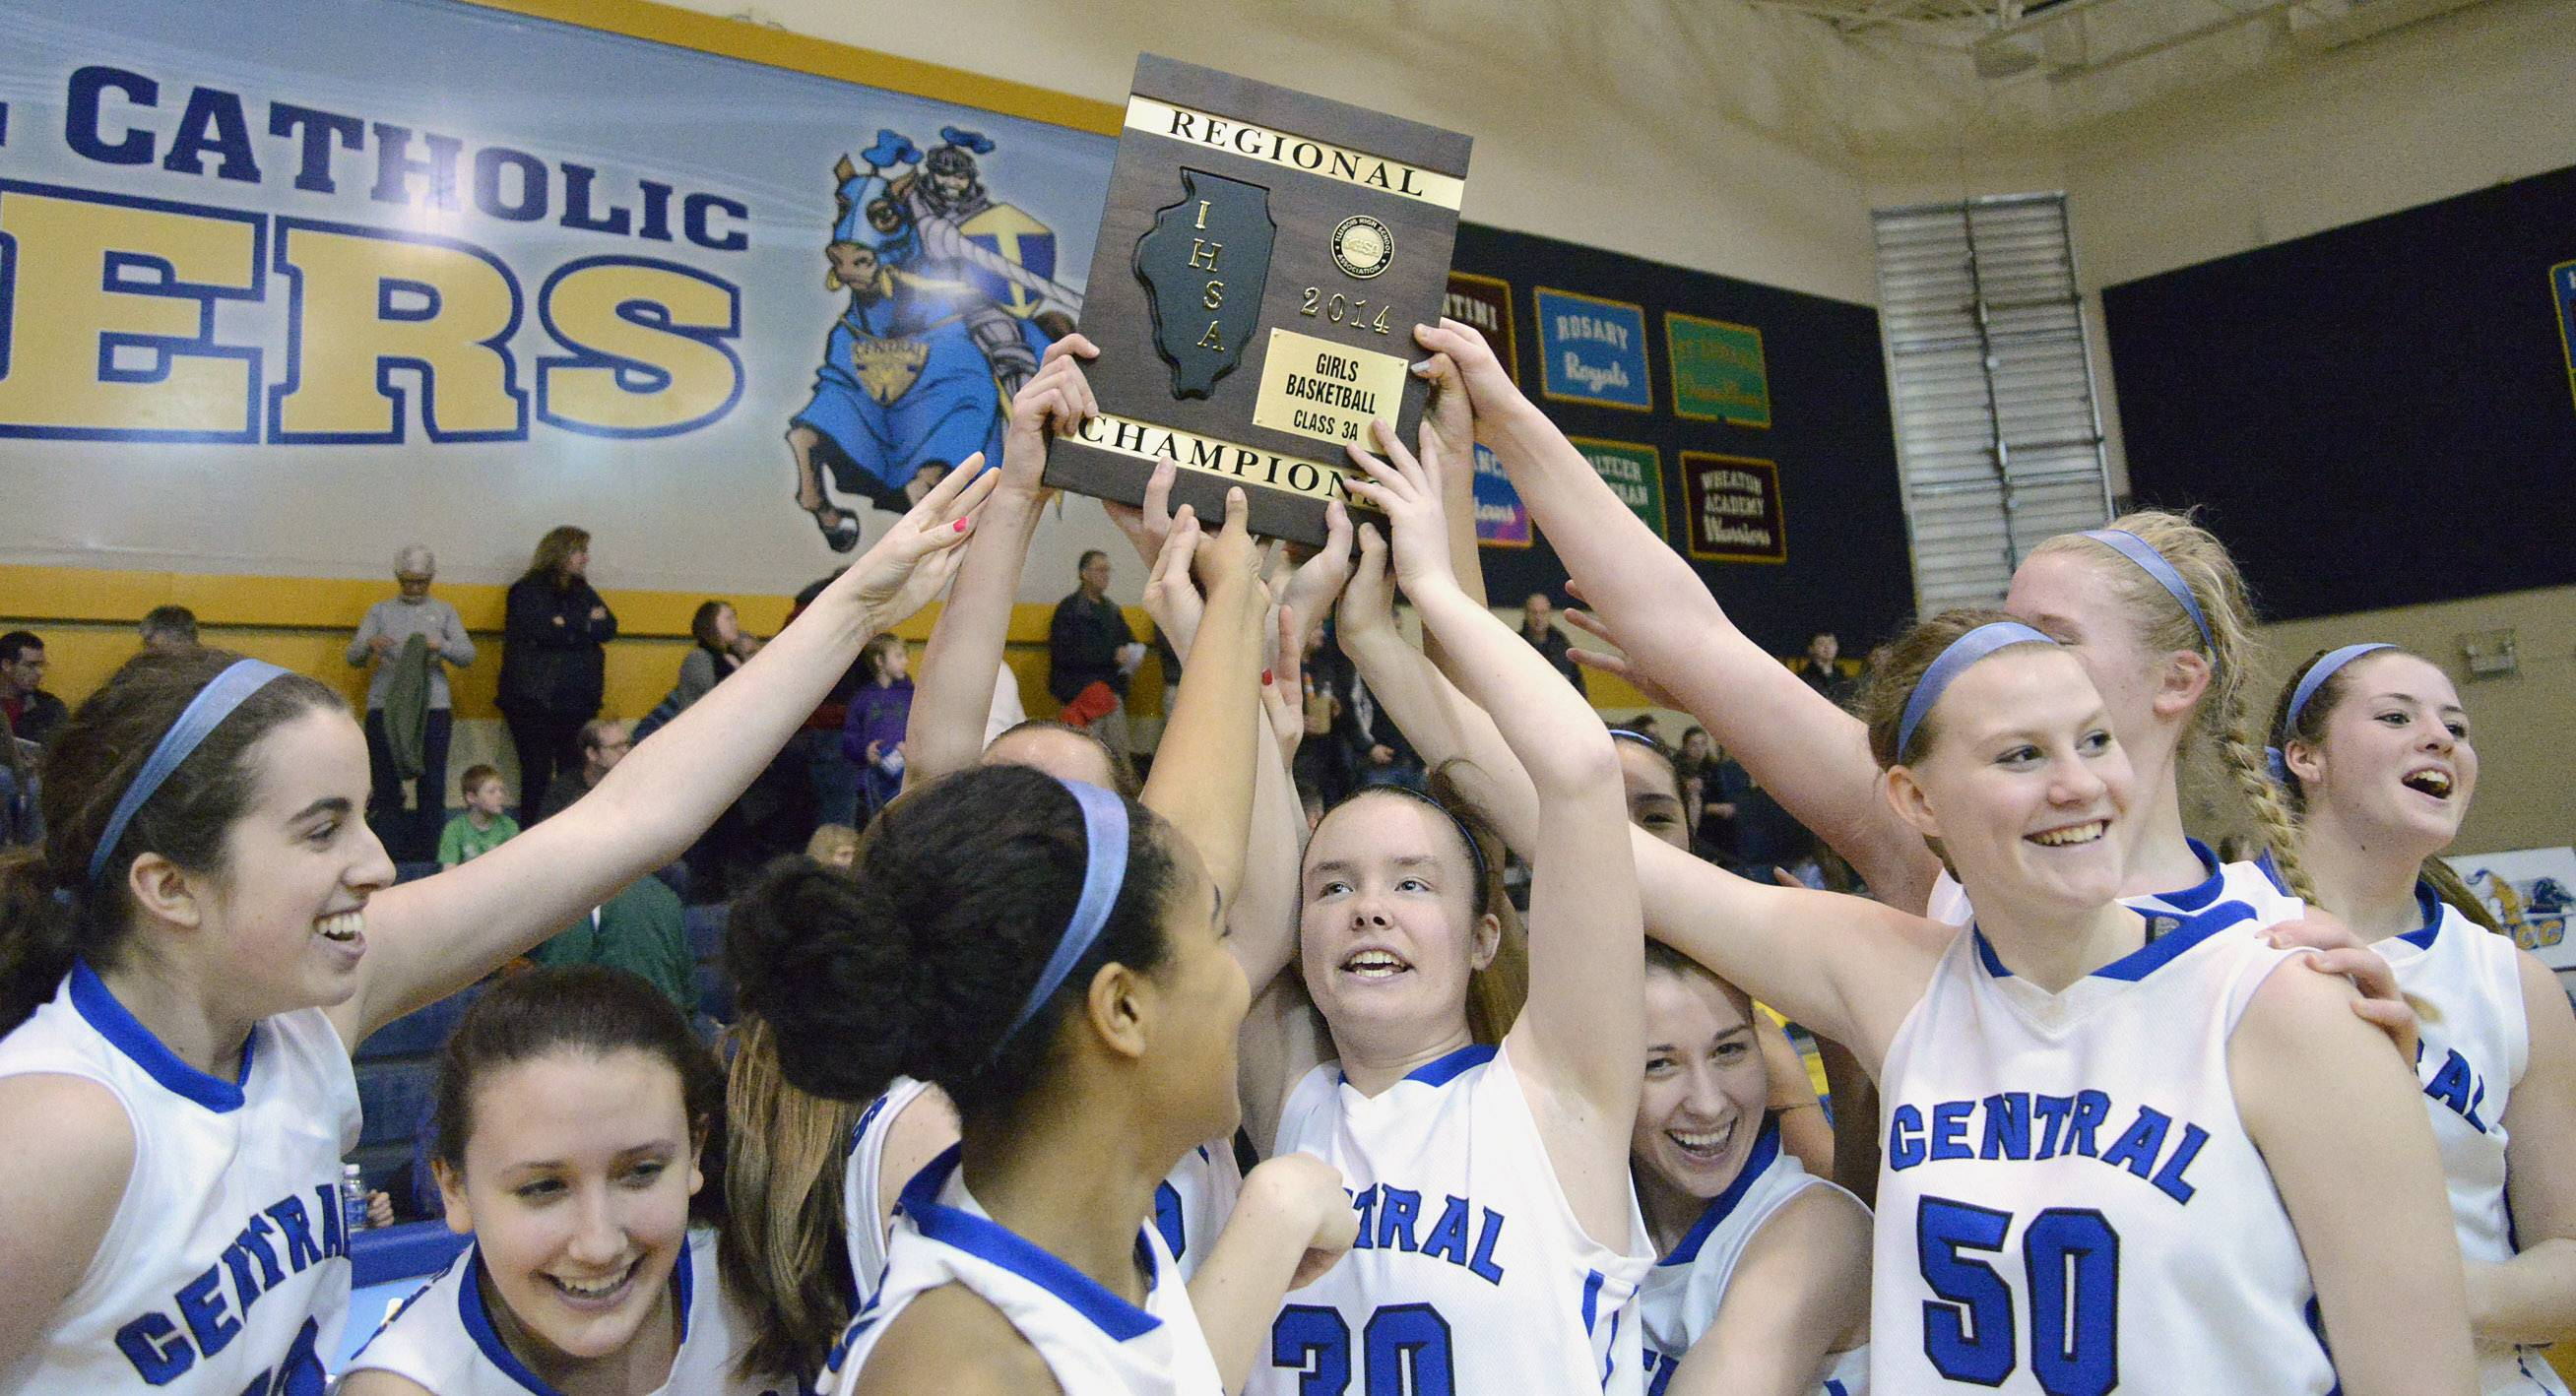 Burlington Central's girls basketball team hoists the Class 3A regional championship plaque after its win over St. Edward on Saturday in Aurora. Cassandra Ciganek (30) helps hold up the plaque from the center.